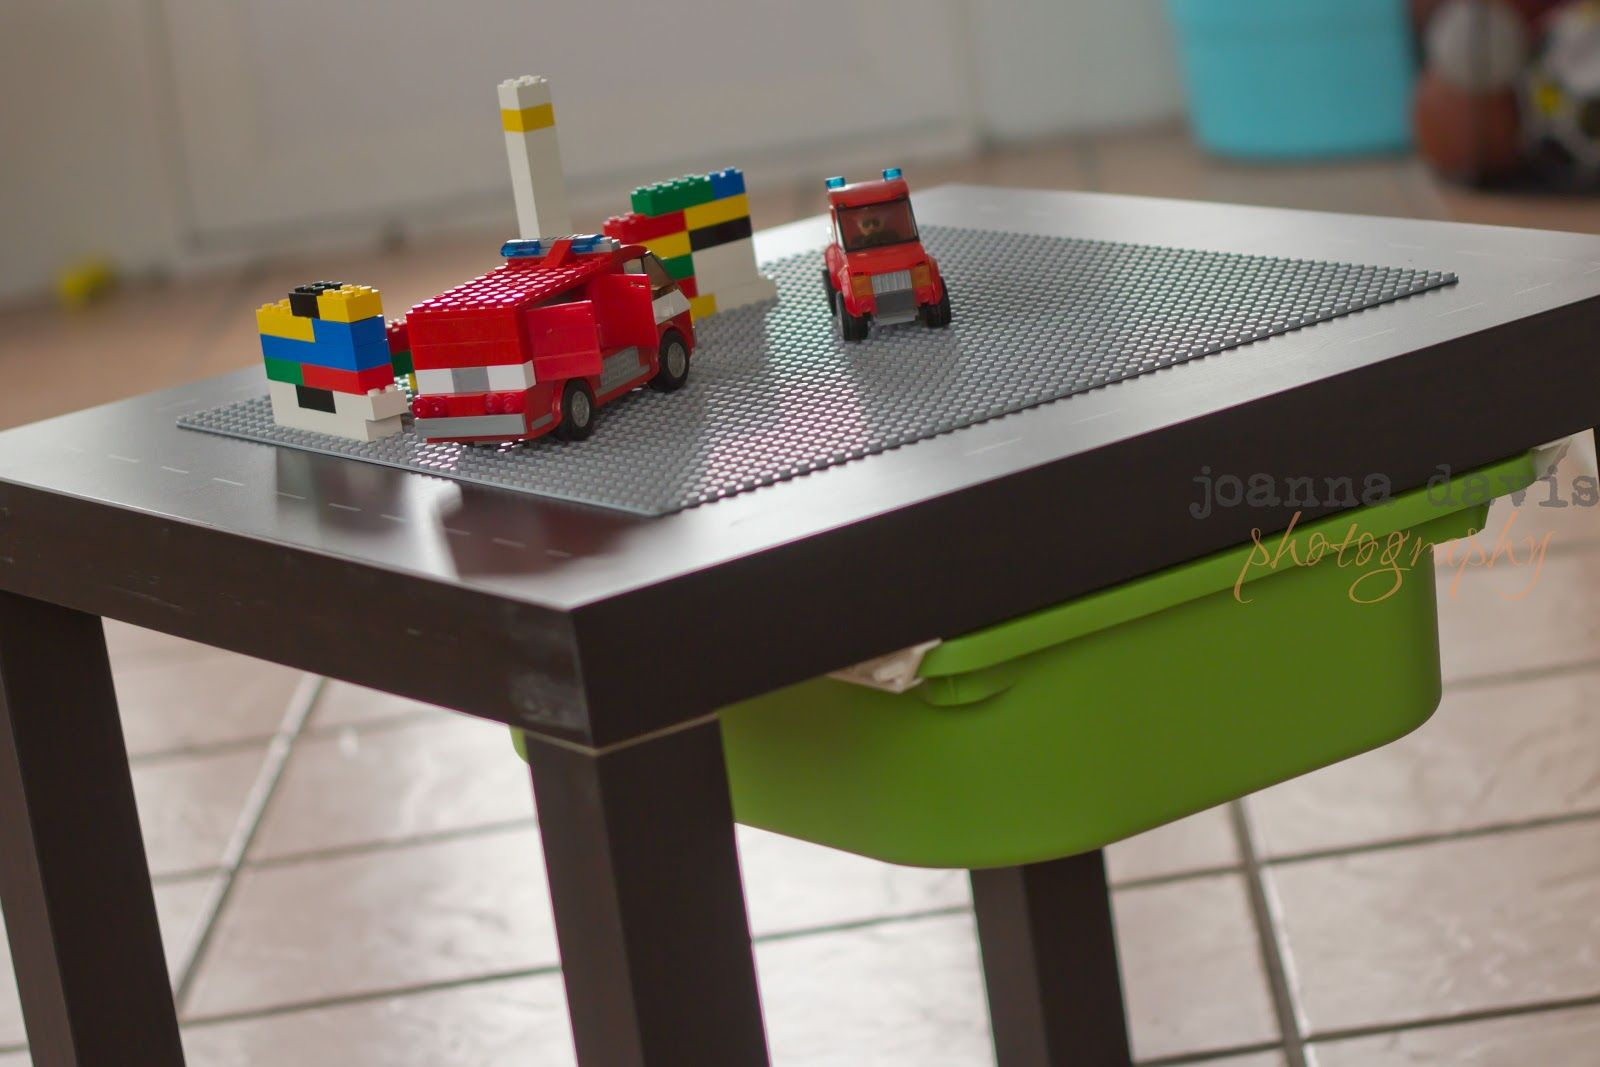 ikea lack lego hack total 30 1 lack side table from ikea 1 trofast bin from ikea 3. Black Bedroom Furniture Sets. Home Design Ideas